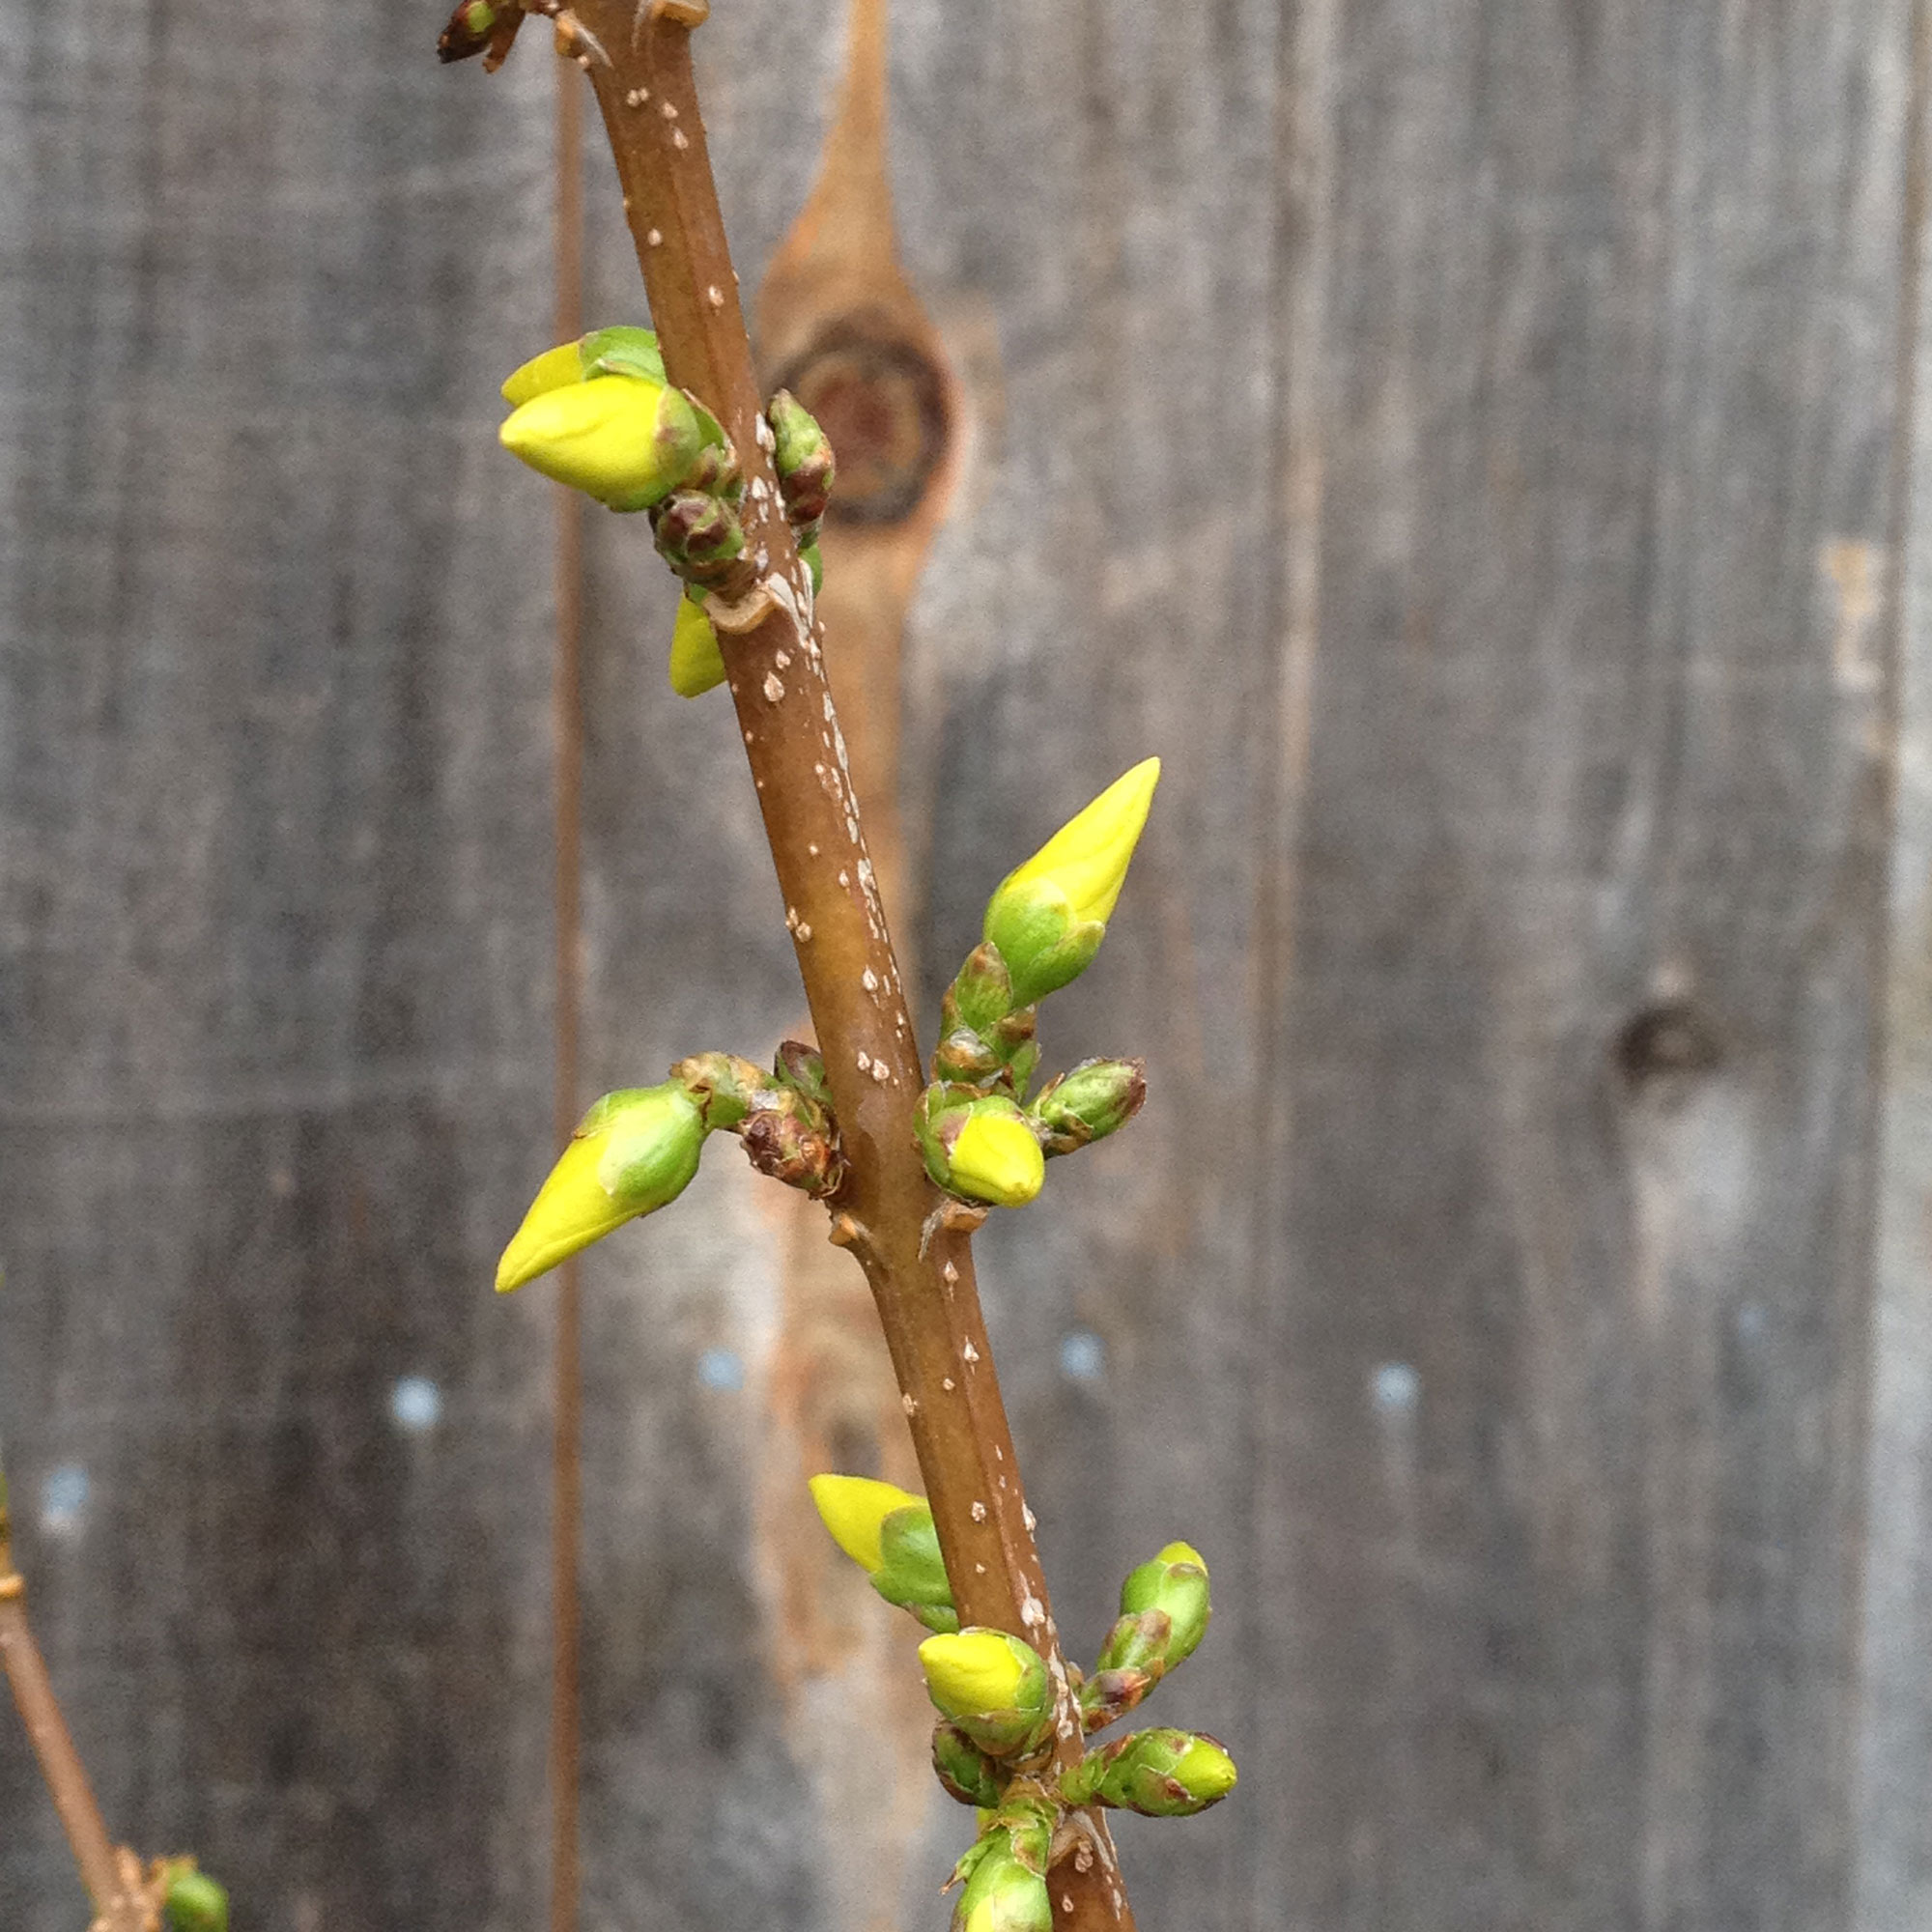 Yellow forsythia buds on last season's growth